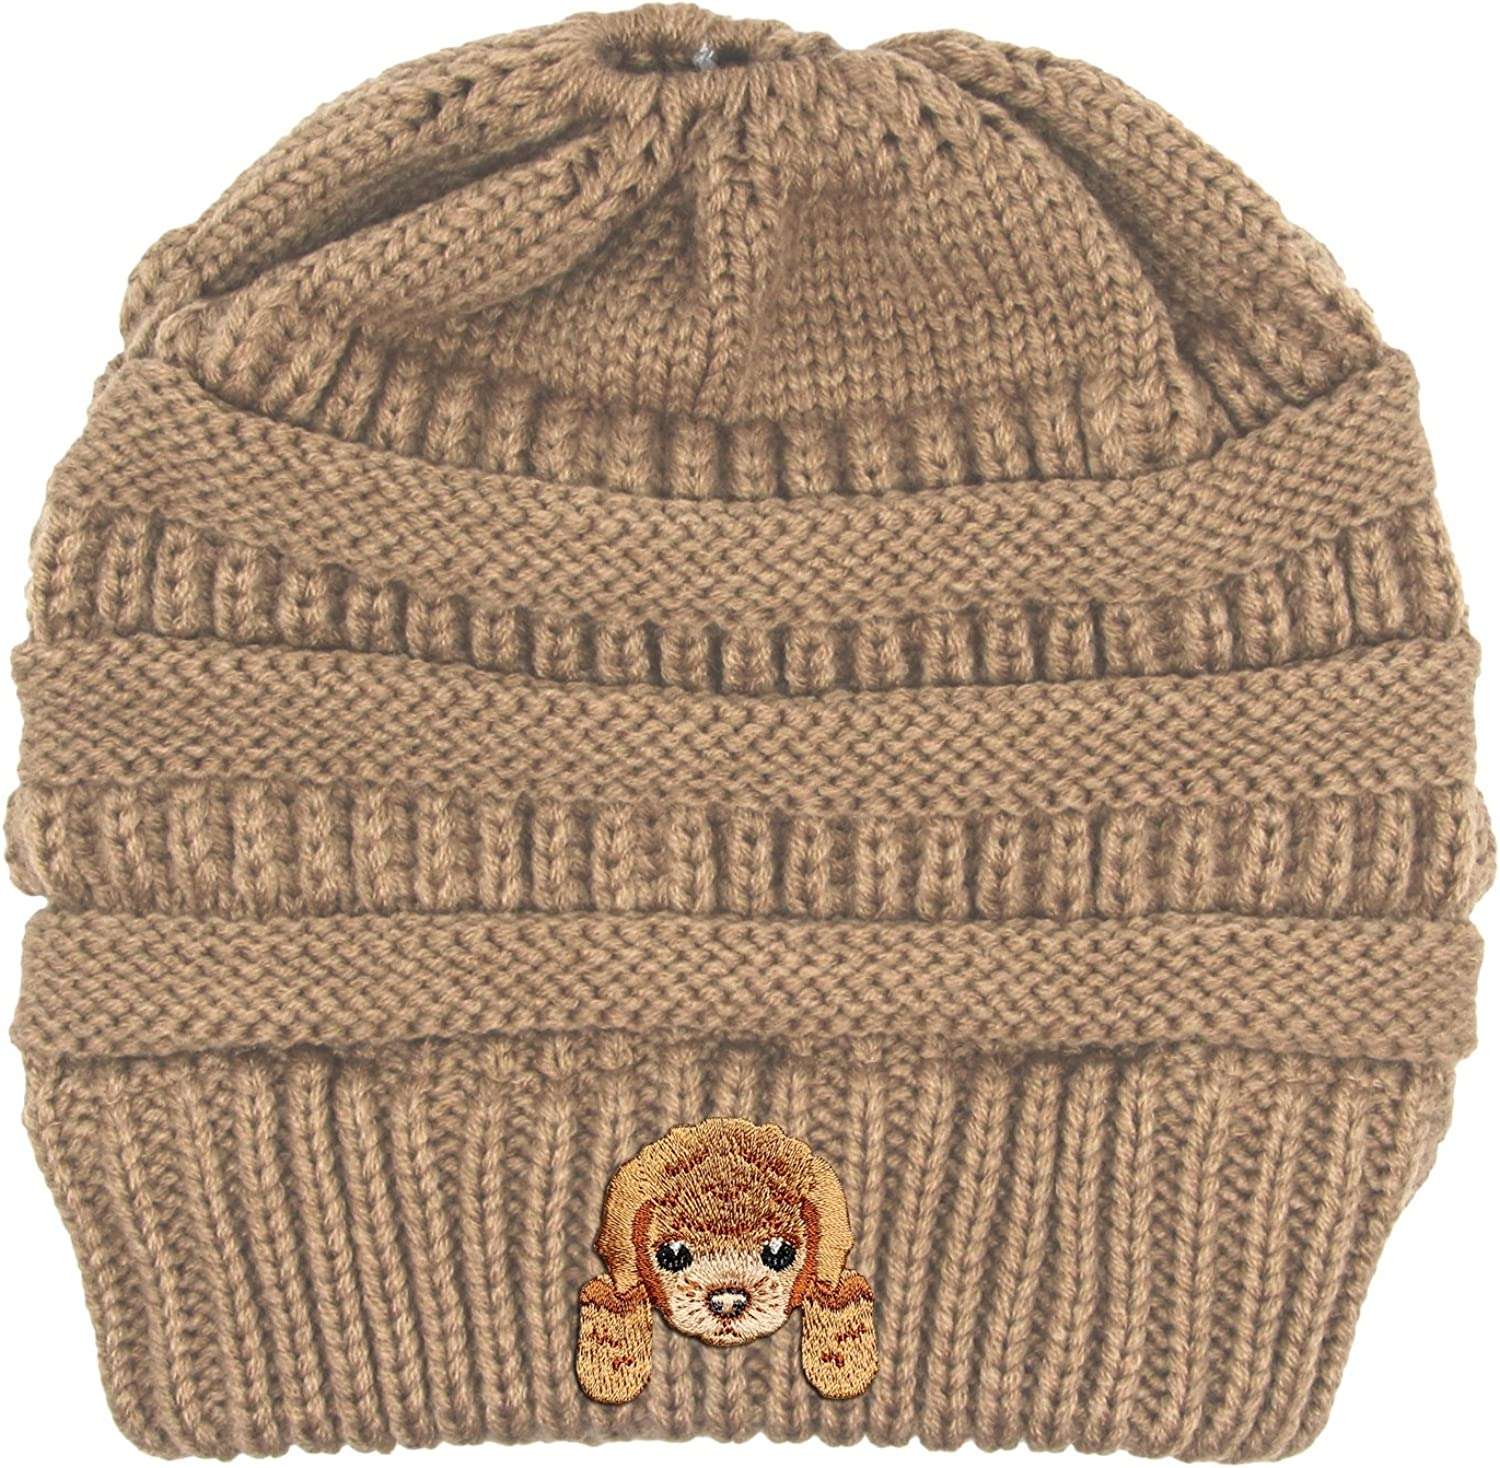 Lhotse Poodle Embroidered Puppy Dog Series Beanie  Stretch Fleece Cable Knit High Bun Ponytail Skullies Hat Cap  Beige